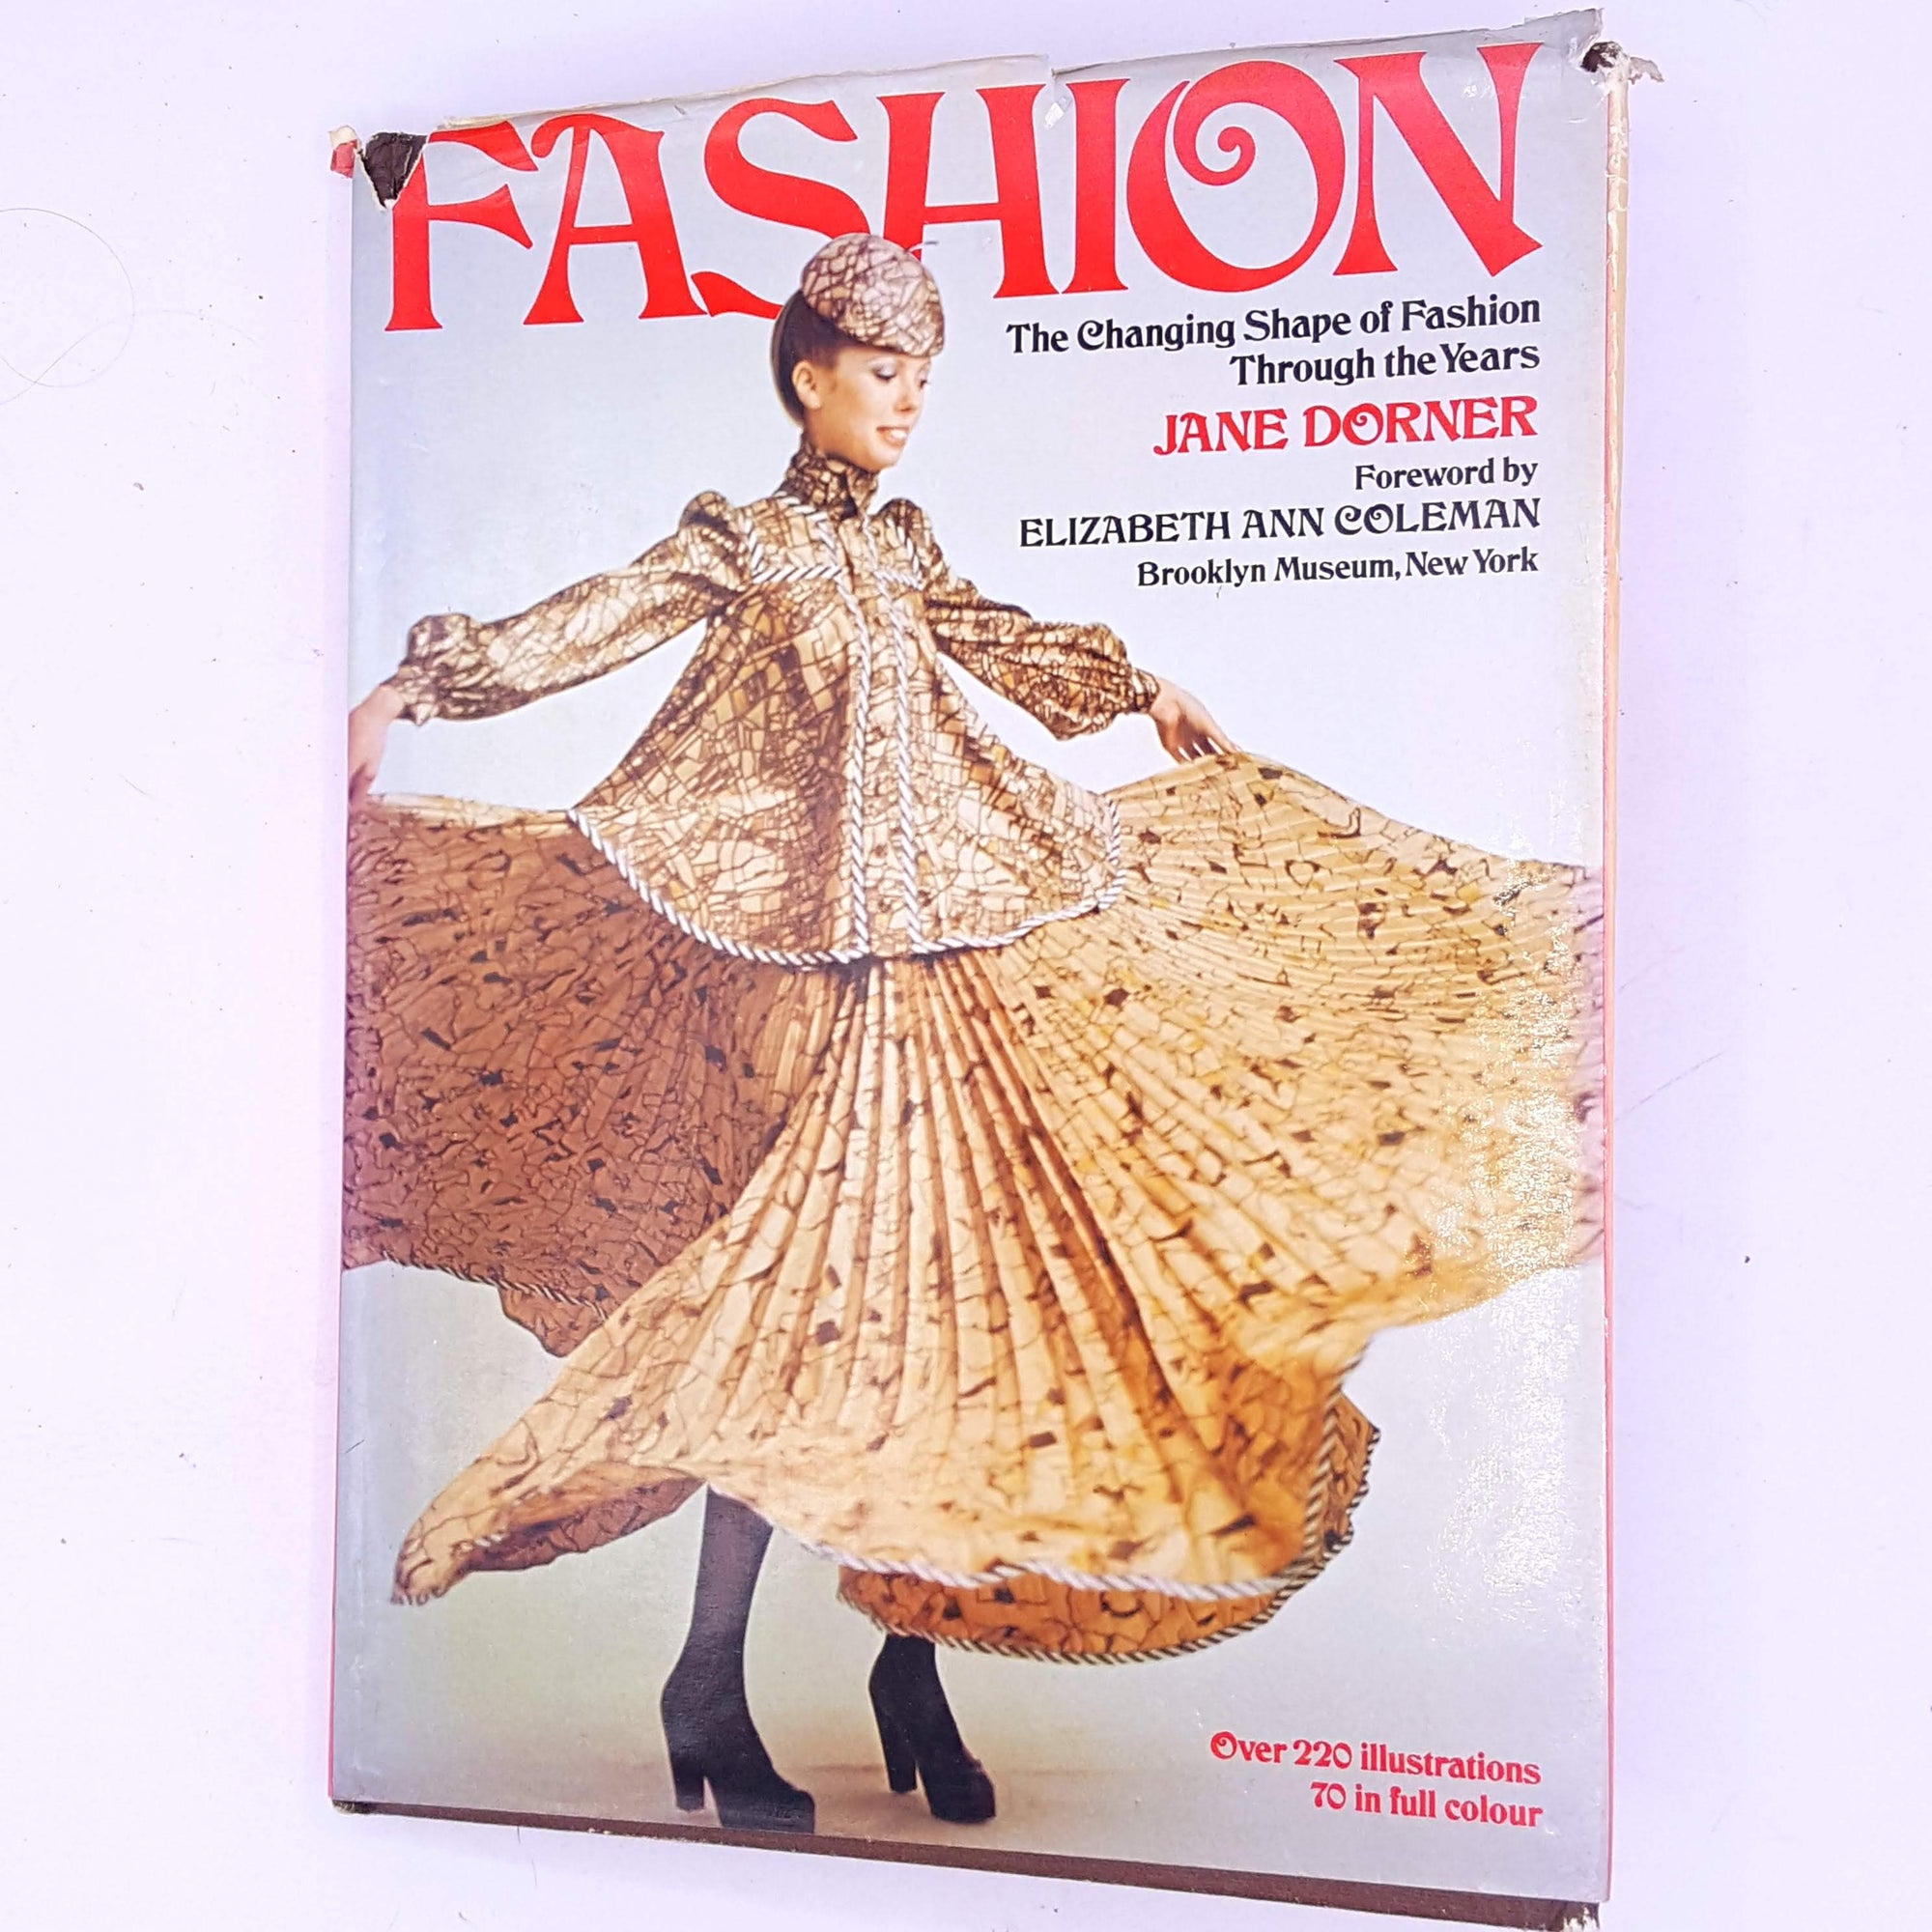 Fashion - The Changing Shape of Fashion Through the Years